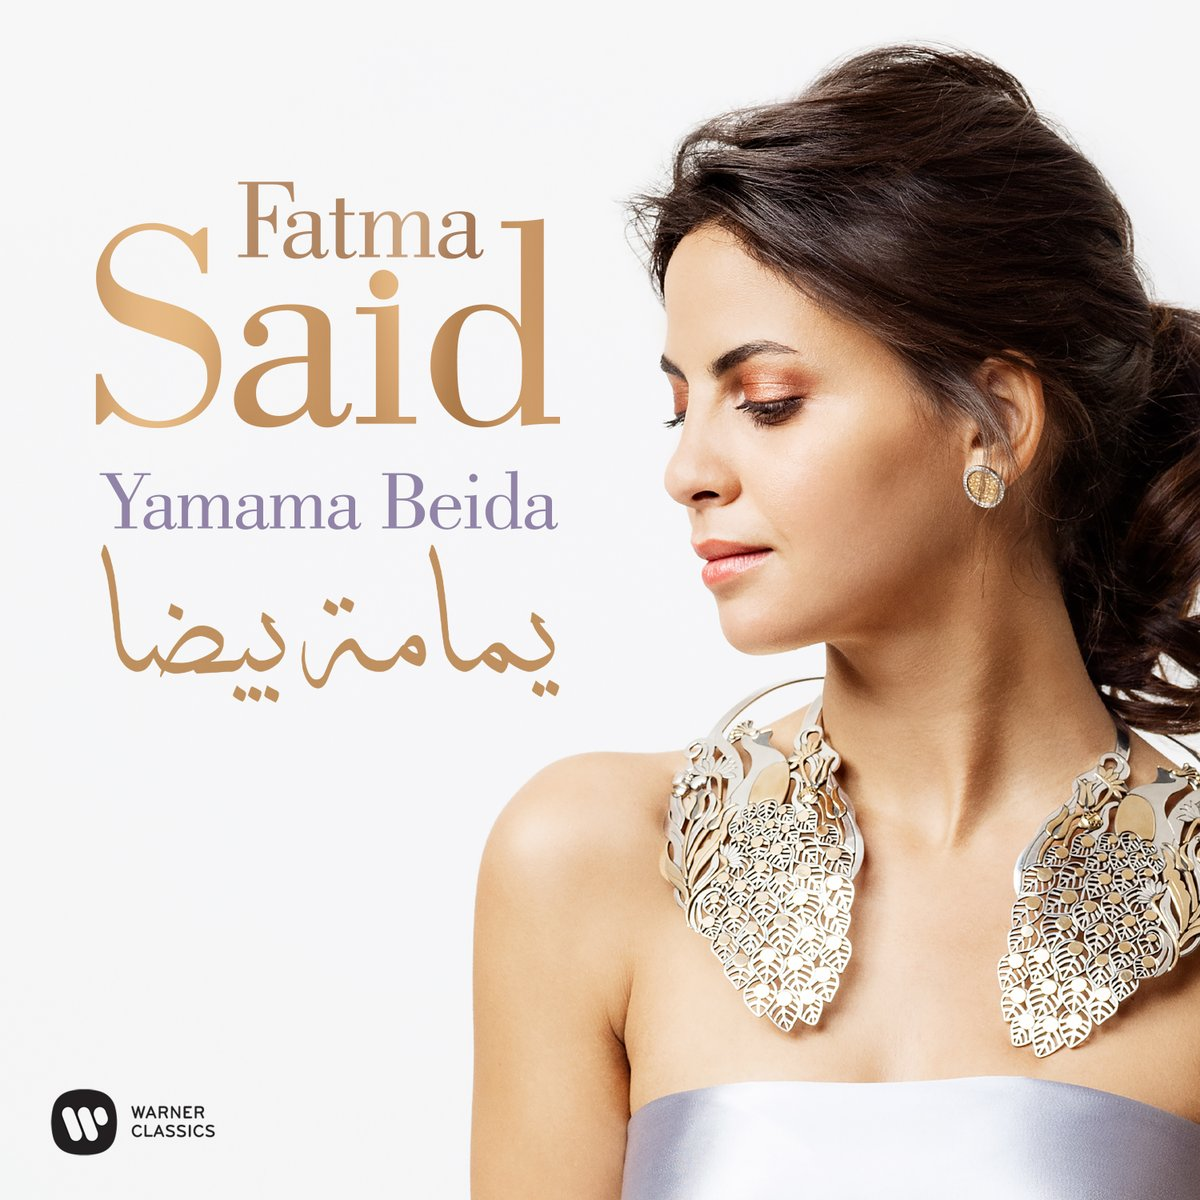 """""""The bonds between the cultures represented on #ElNour have never been broken,"""" says @FatmaSaid, """"because each of them asserts an influence in the Mediterranean region.""""  Discover a new single from the album: https://t.co/vWD0OS1bfa https://t.co/Lk5Lzk0ybz"""